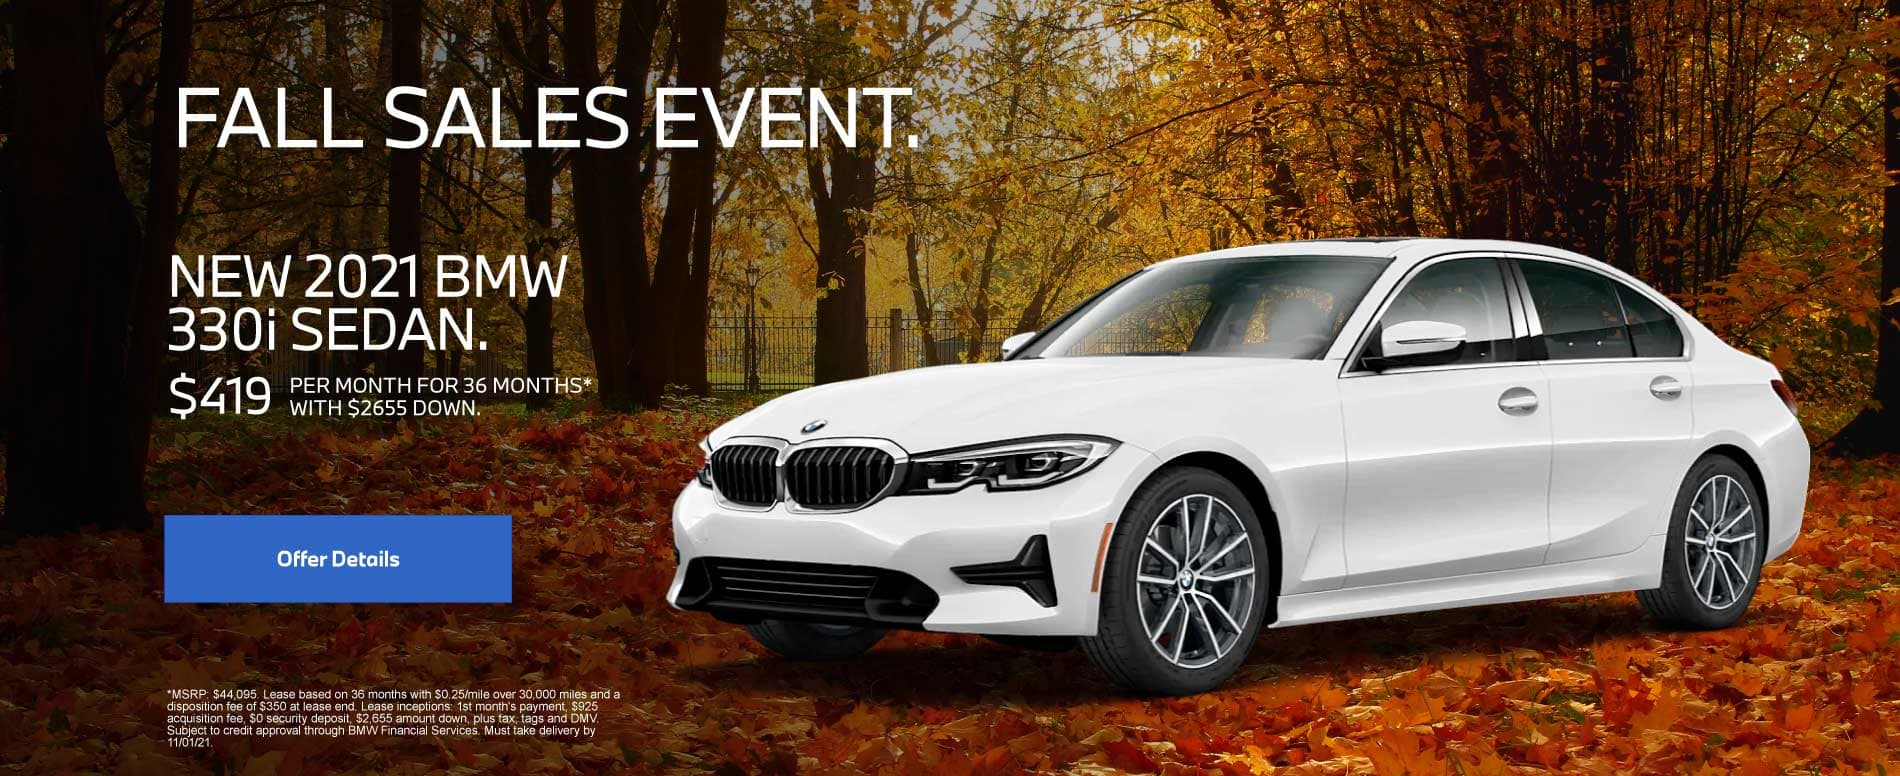 Fall Sales Event. New 2021 BMW 330i Sedan. $419 Per Month for 36 months with $2655 down.